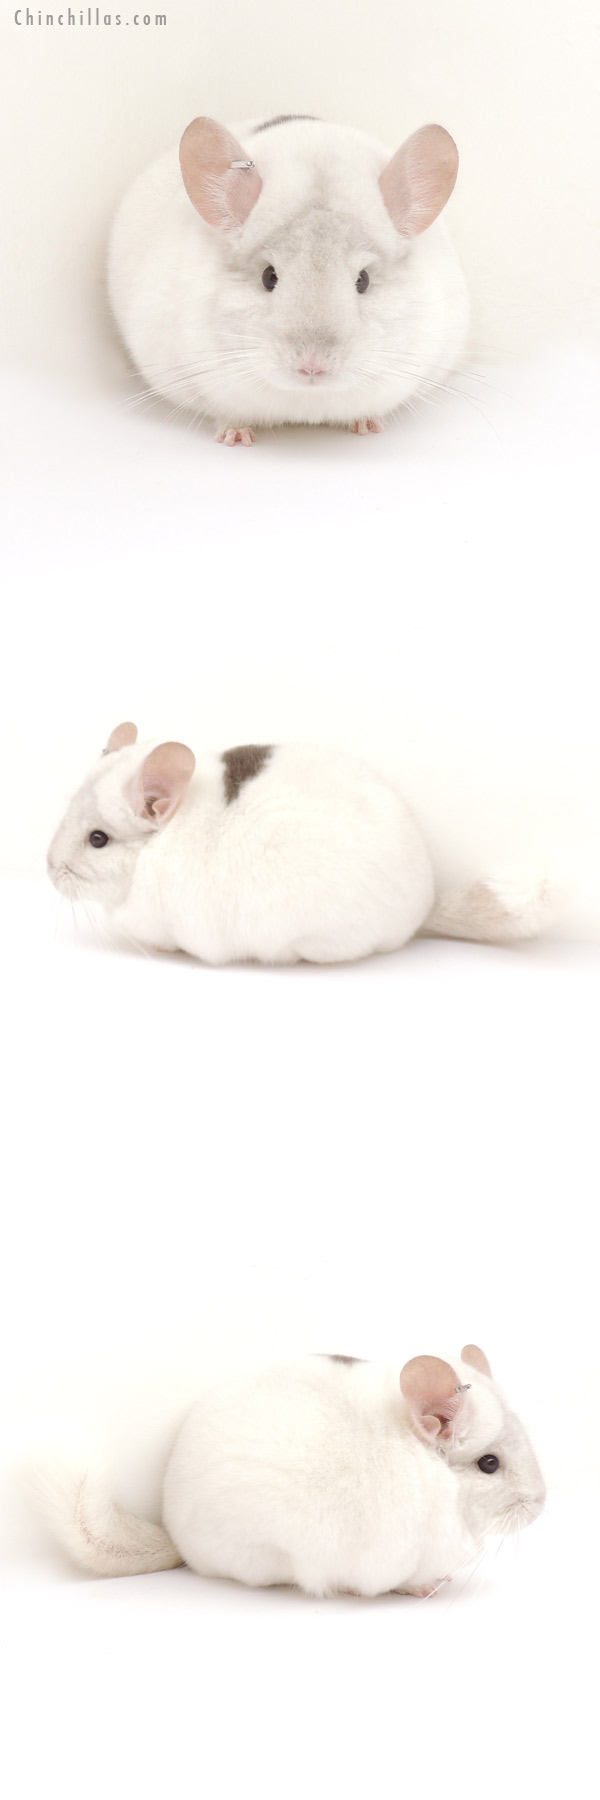 13132 1st Place Pink White Male w/ Body Spot Chinchilla